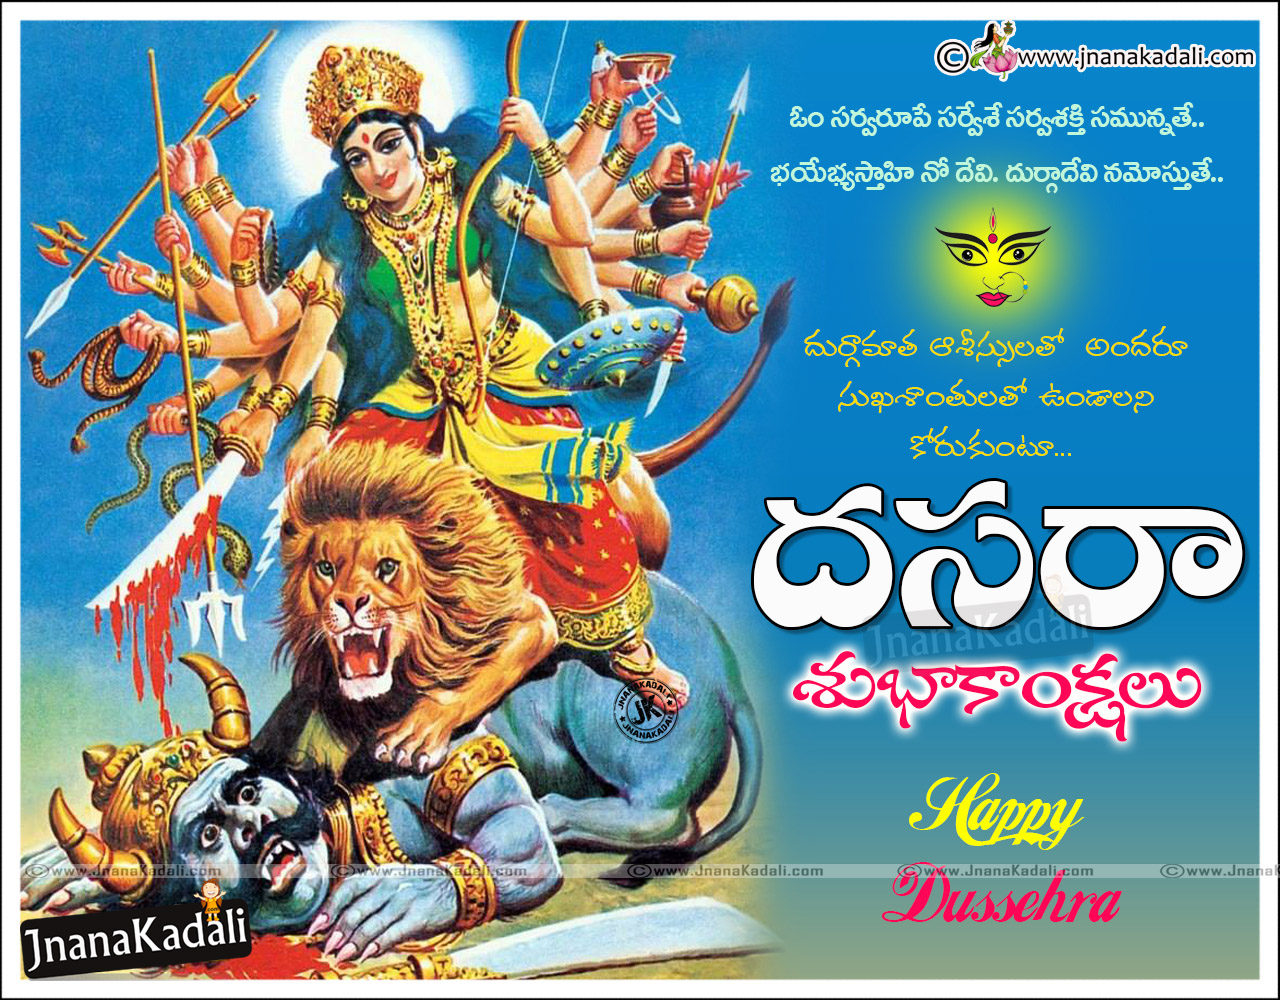 Happy dussehra 2016 images wishes sms quotes vijayadashami dussehra here is vijayadashami telugu greetings wishes hdbannersvijayadashami greetings 2016 messages wishes quotes in telugu m4hsunfo